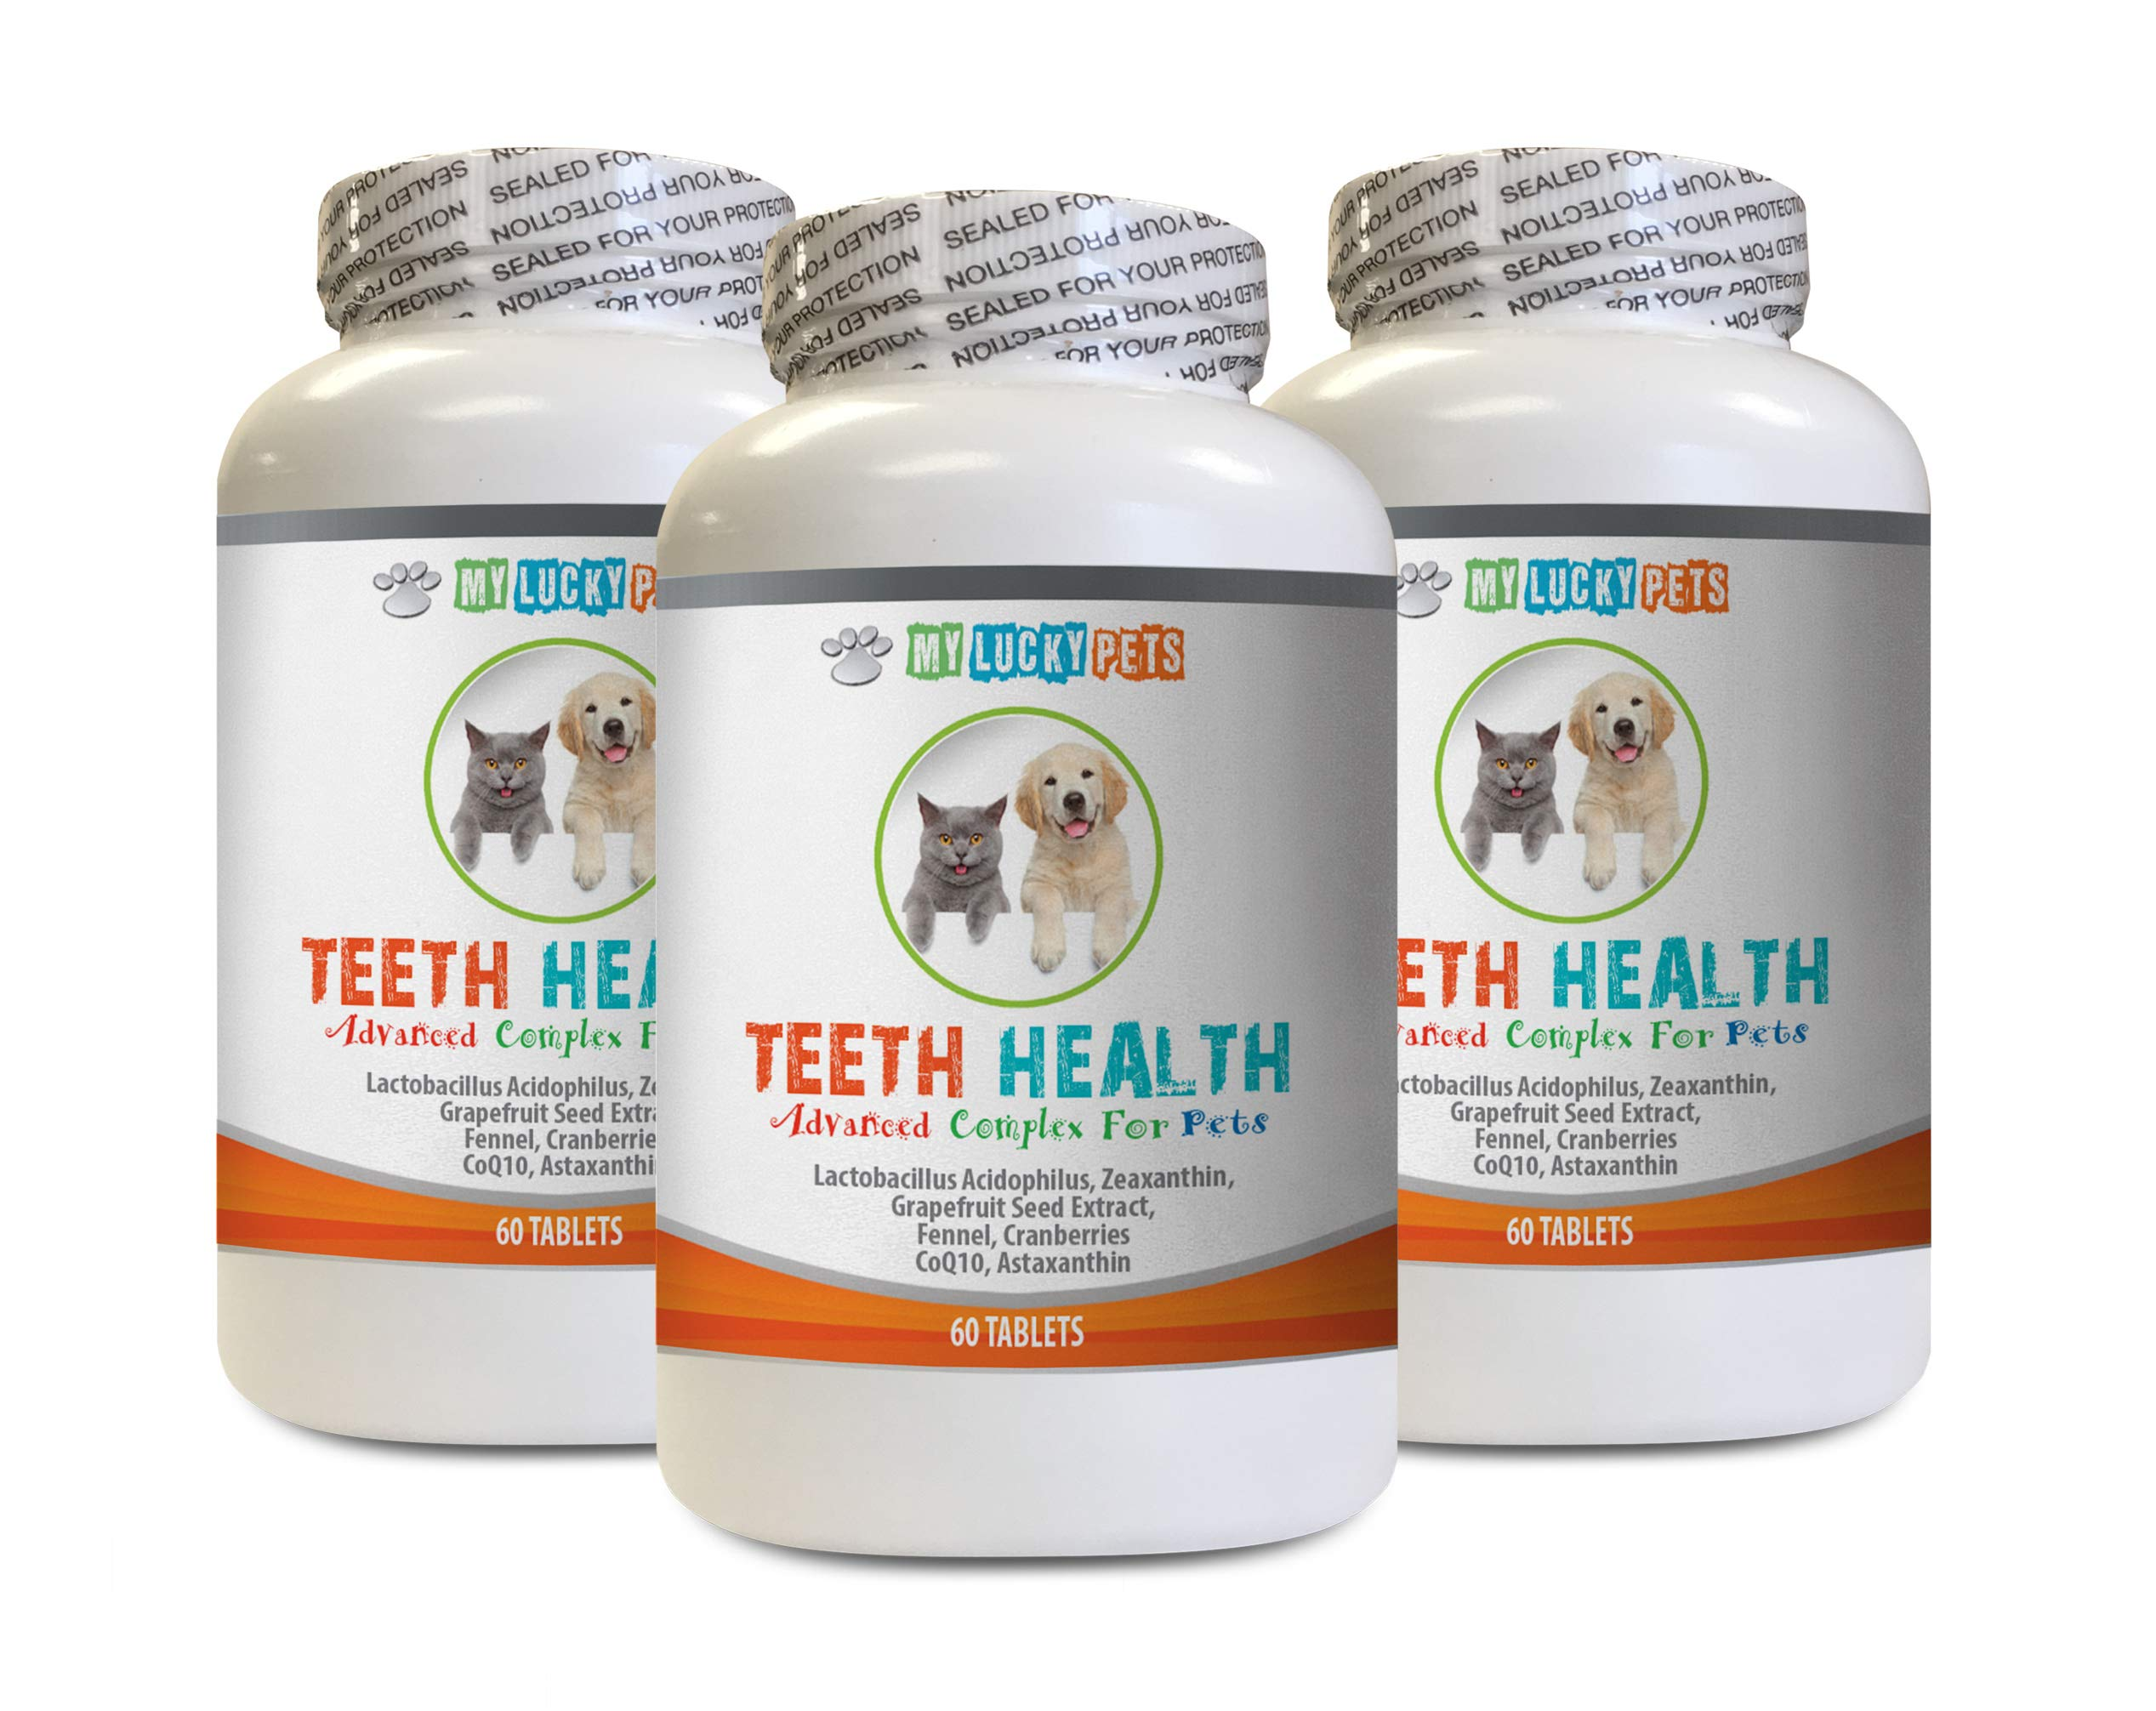 MY LUCKY PETS LLC cat Breathe Treats - PET Teeth Health AID - Dogs and Cats - Immune Boost - Gum and Oral Care - Vitamin c for Cats - 3 Bottles (180 Tablets)